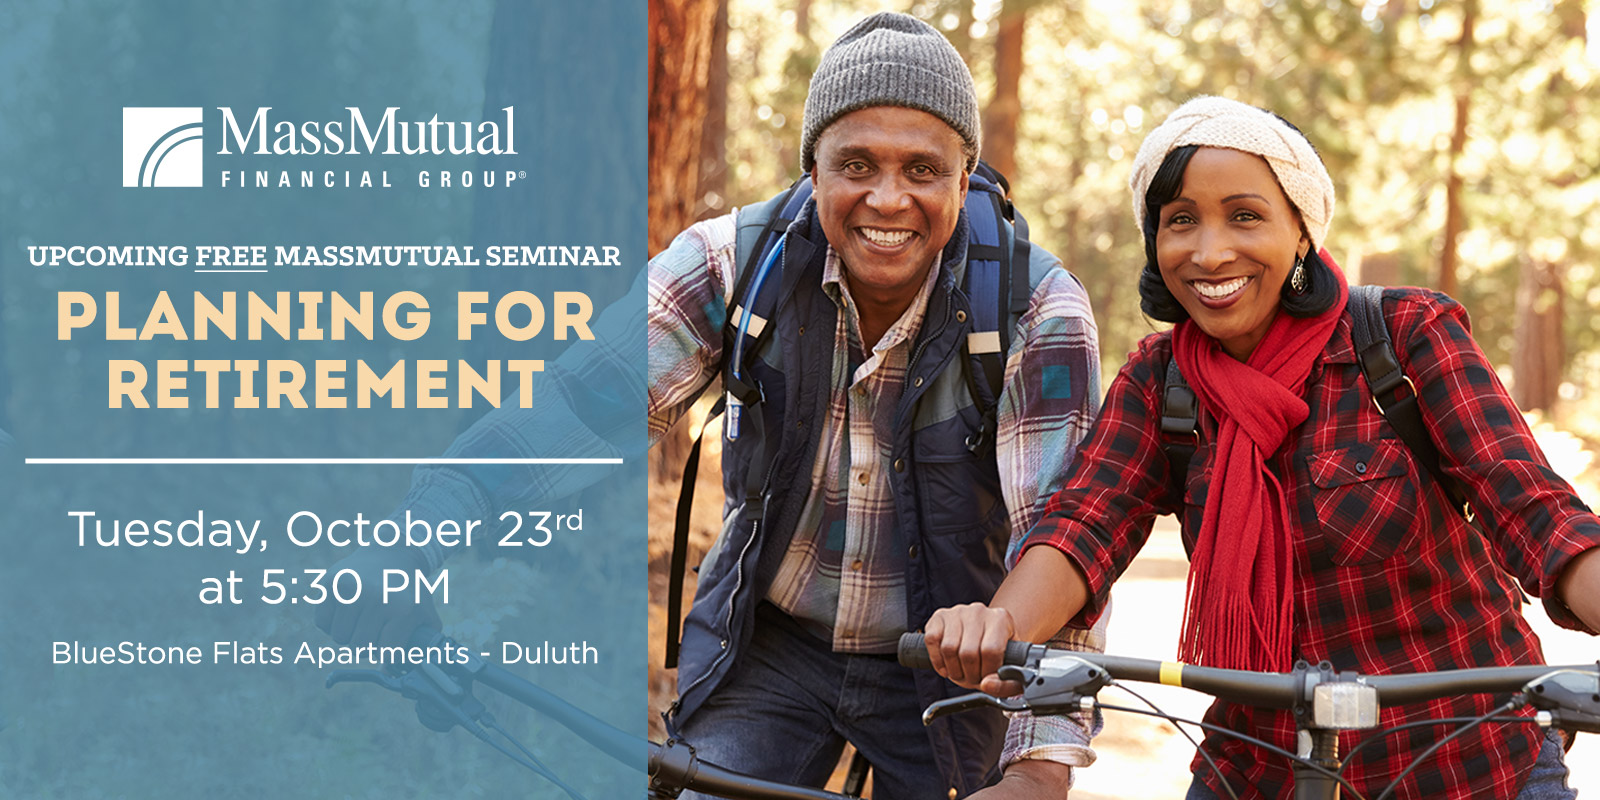 MassMutual Planning for Retirement Seminar in Duluth MN